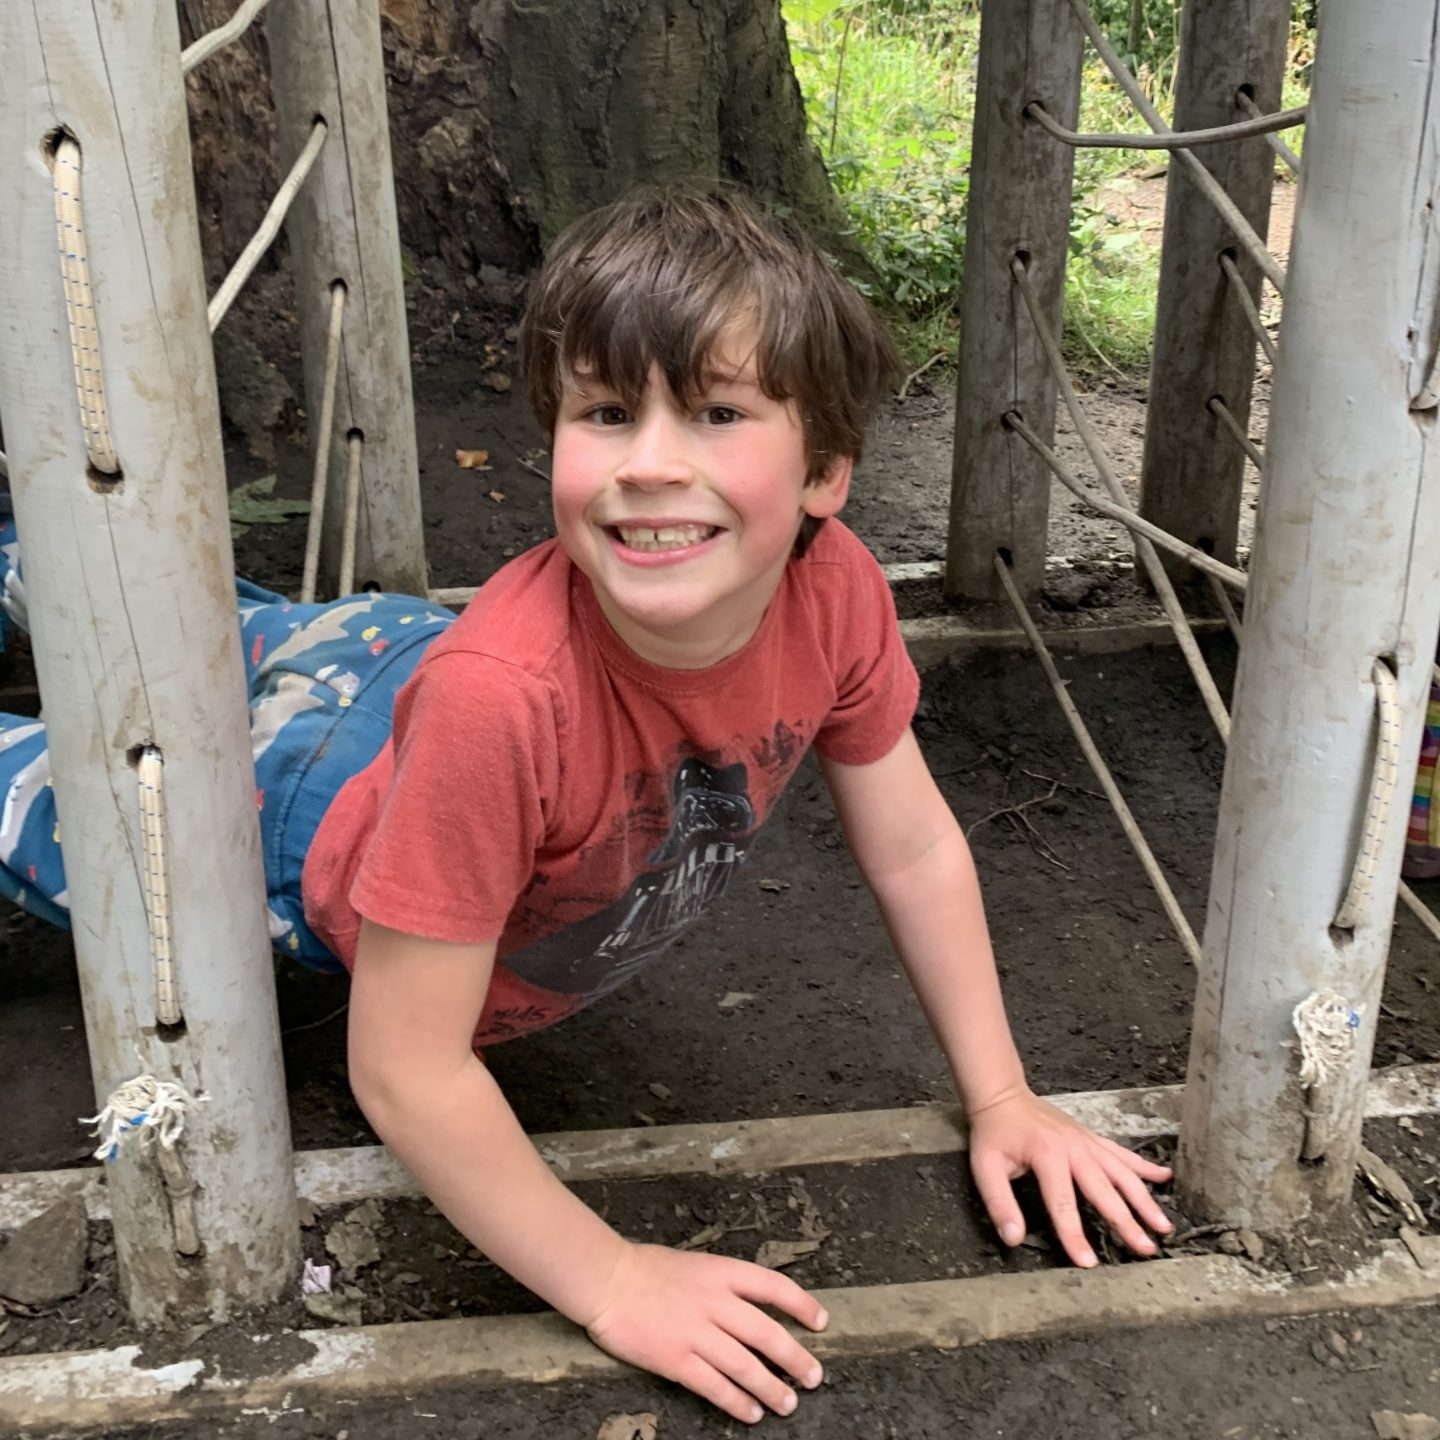 A young boy grinning on the muddy floor on the last week of Summer